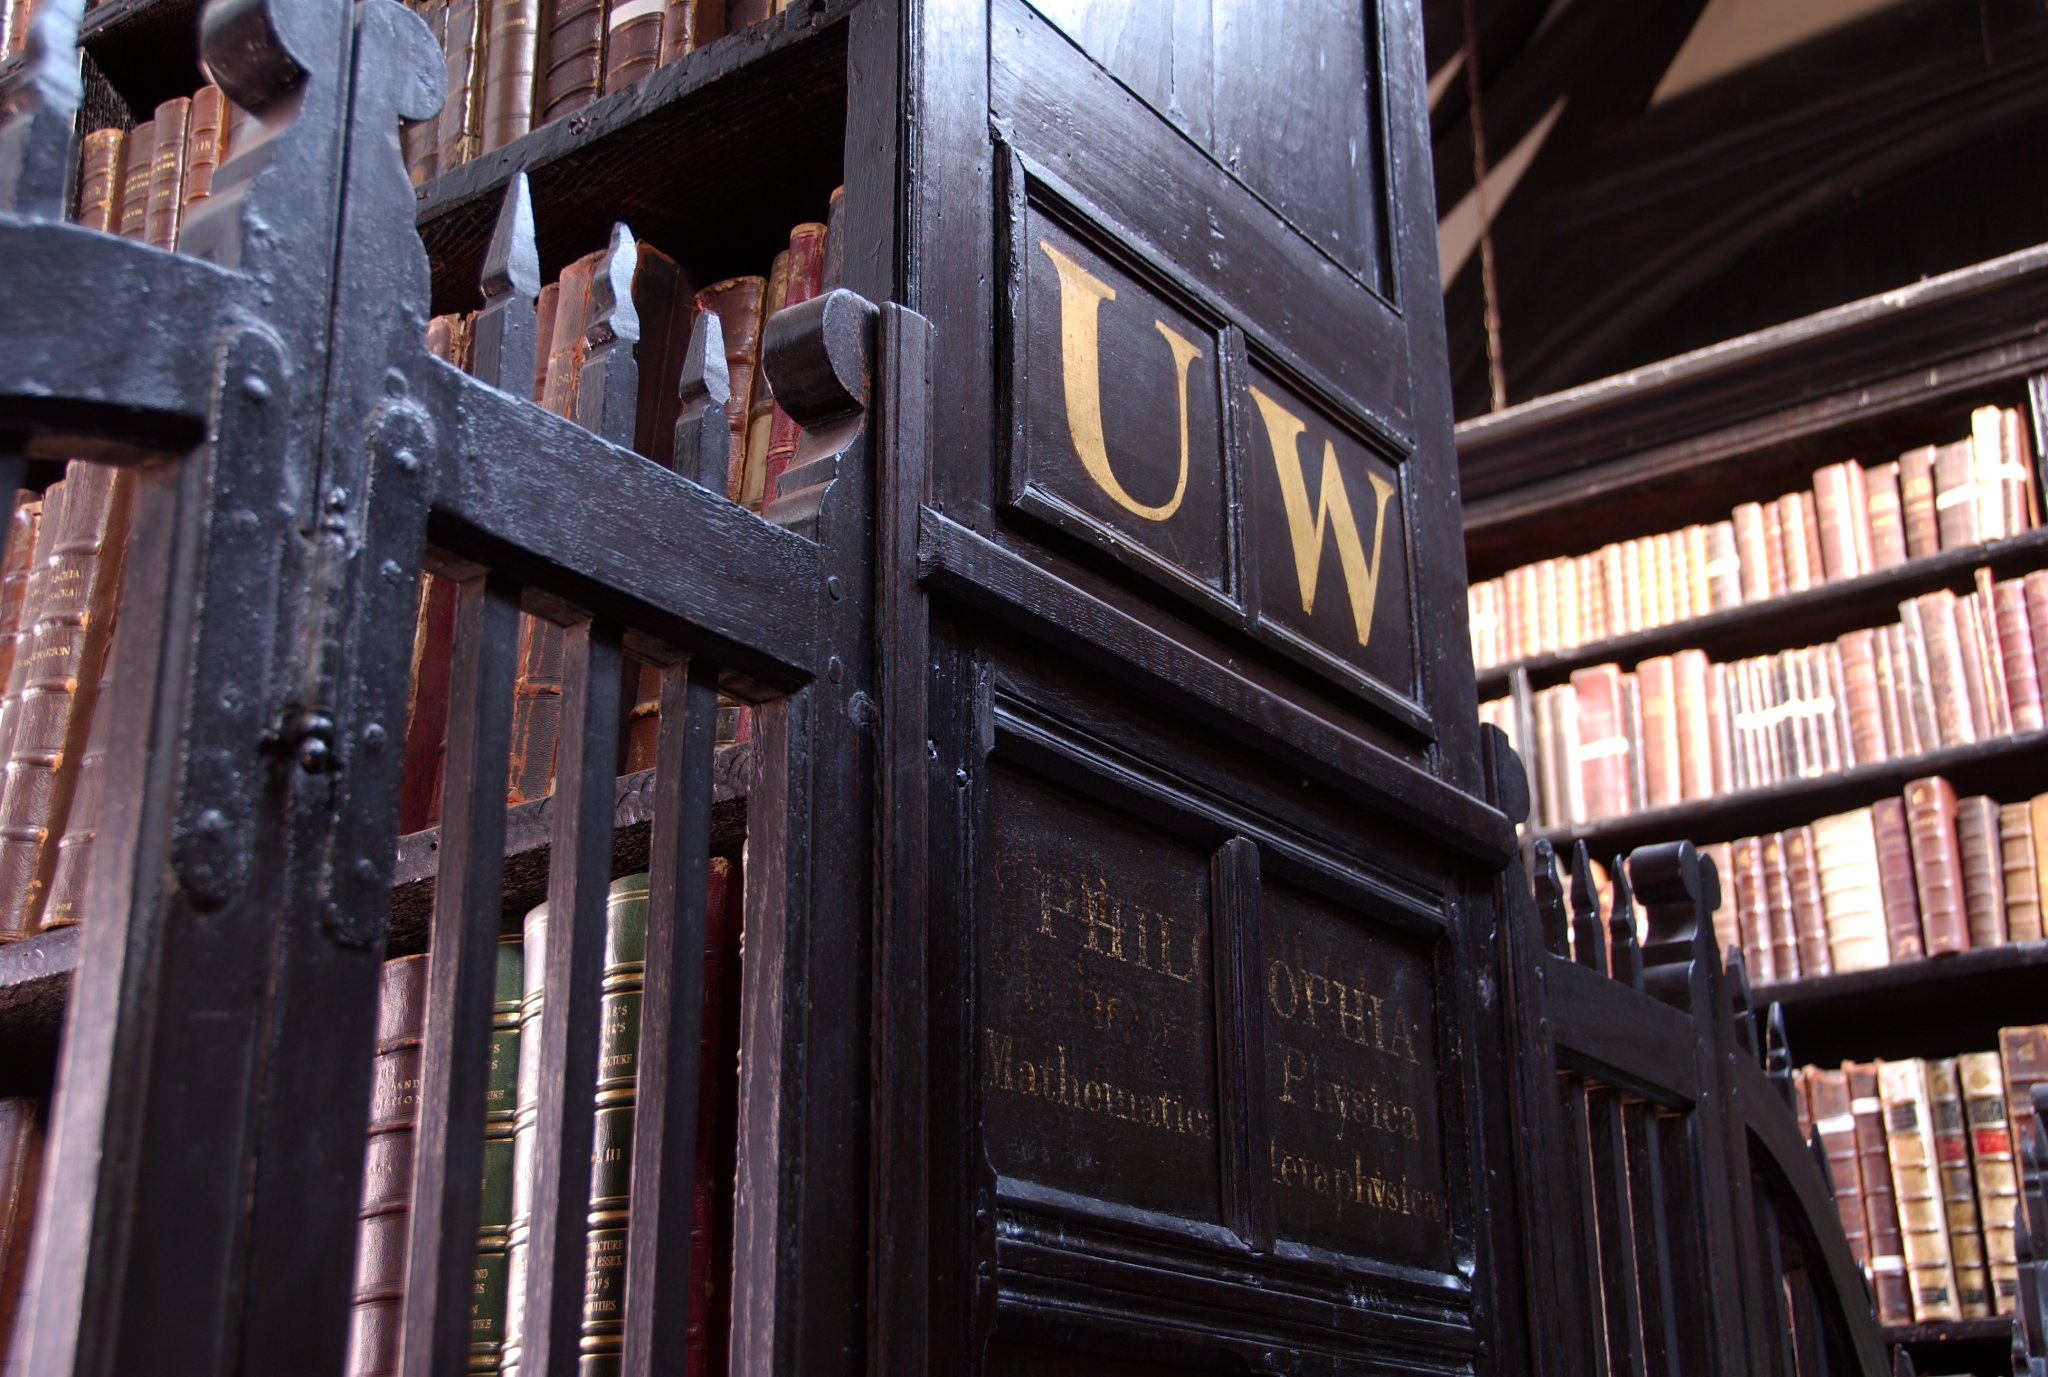 A detail from the interior of Chetham's Library